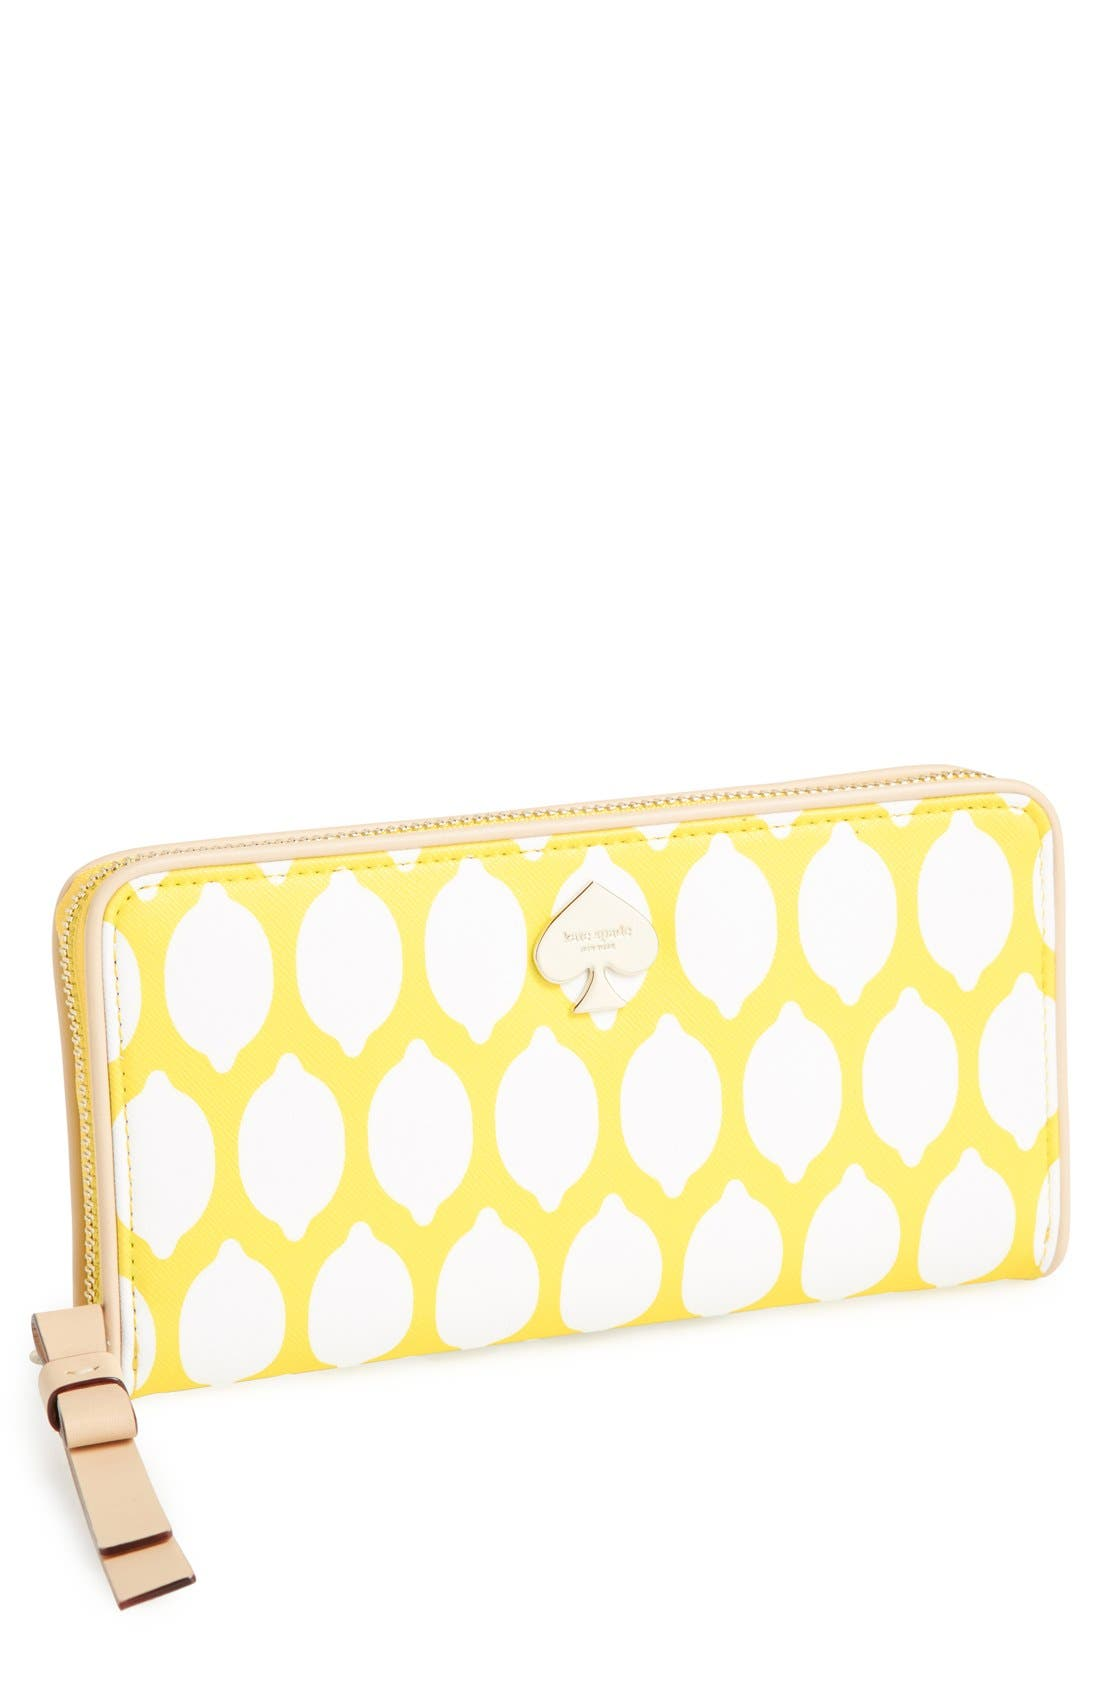 Alternate Image 1 Selected - kate spade new york 'cobblestone park - lacey' wallet wristlet